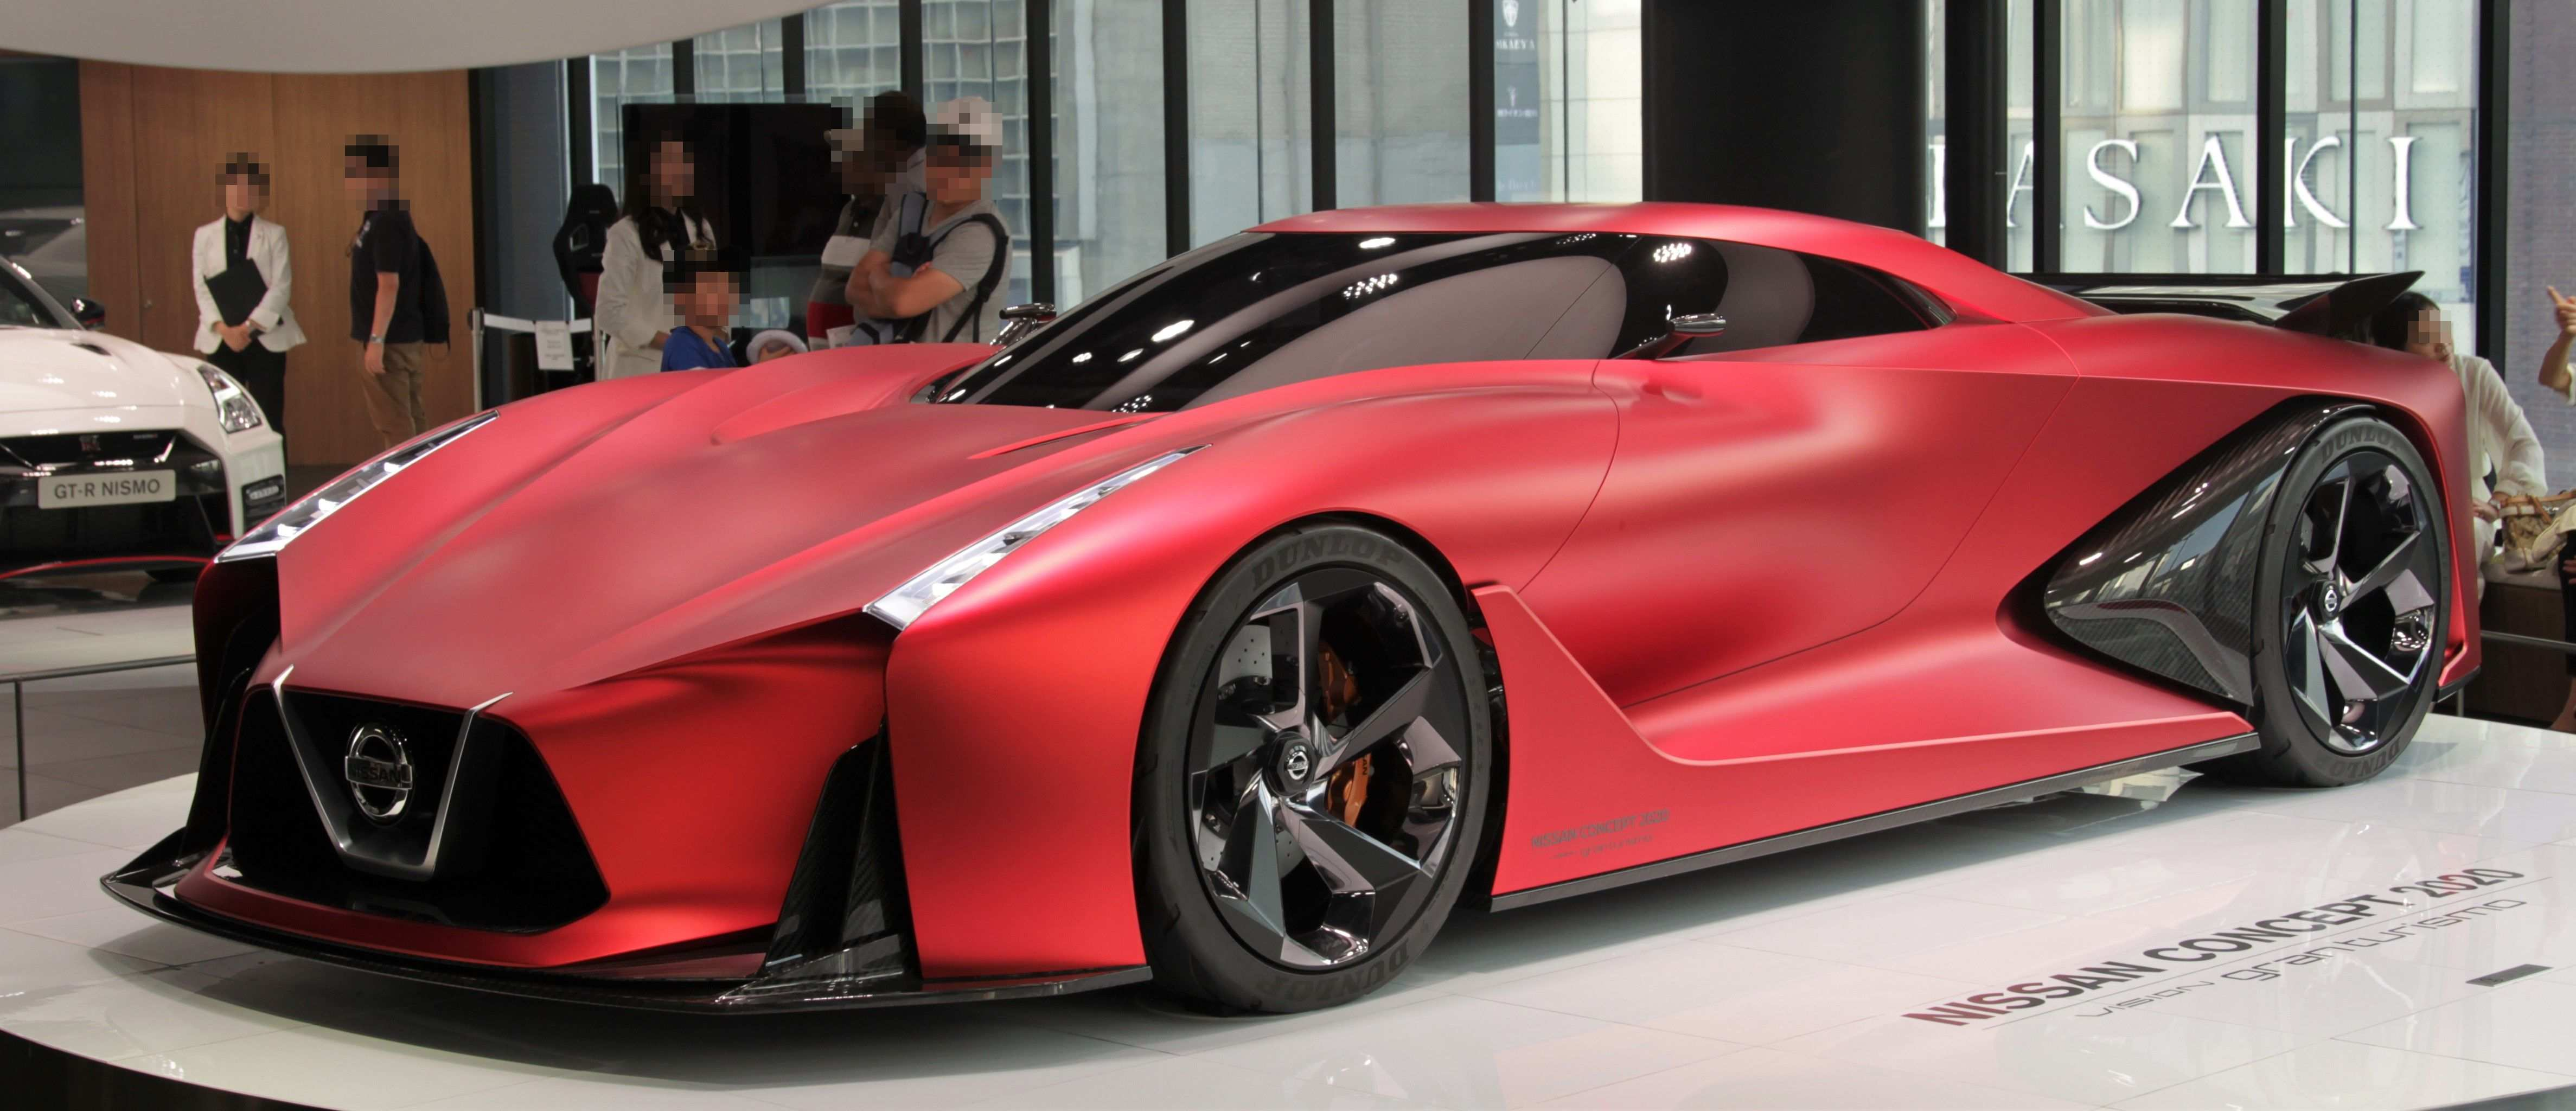 17 All New Nissan Concept 2020 Gran Turismo Model for Nissan Concept 2020 Gran Turismo